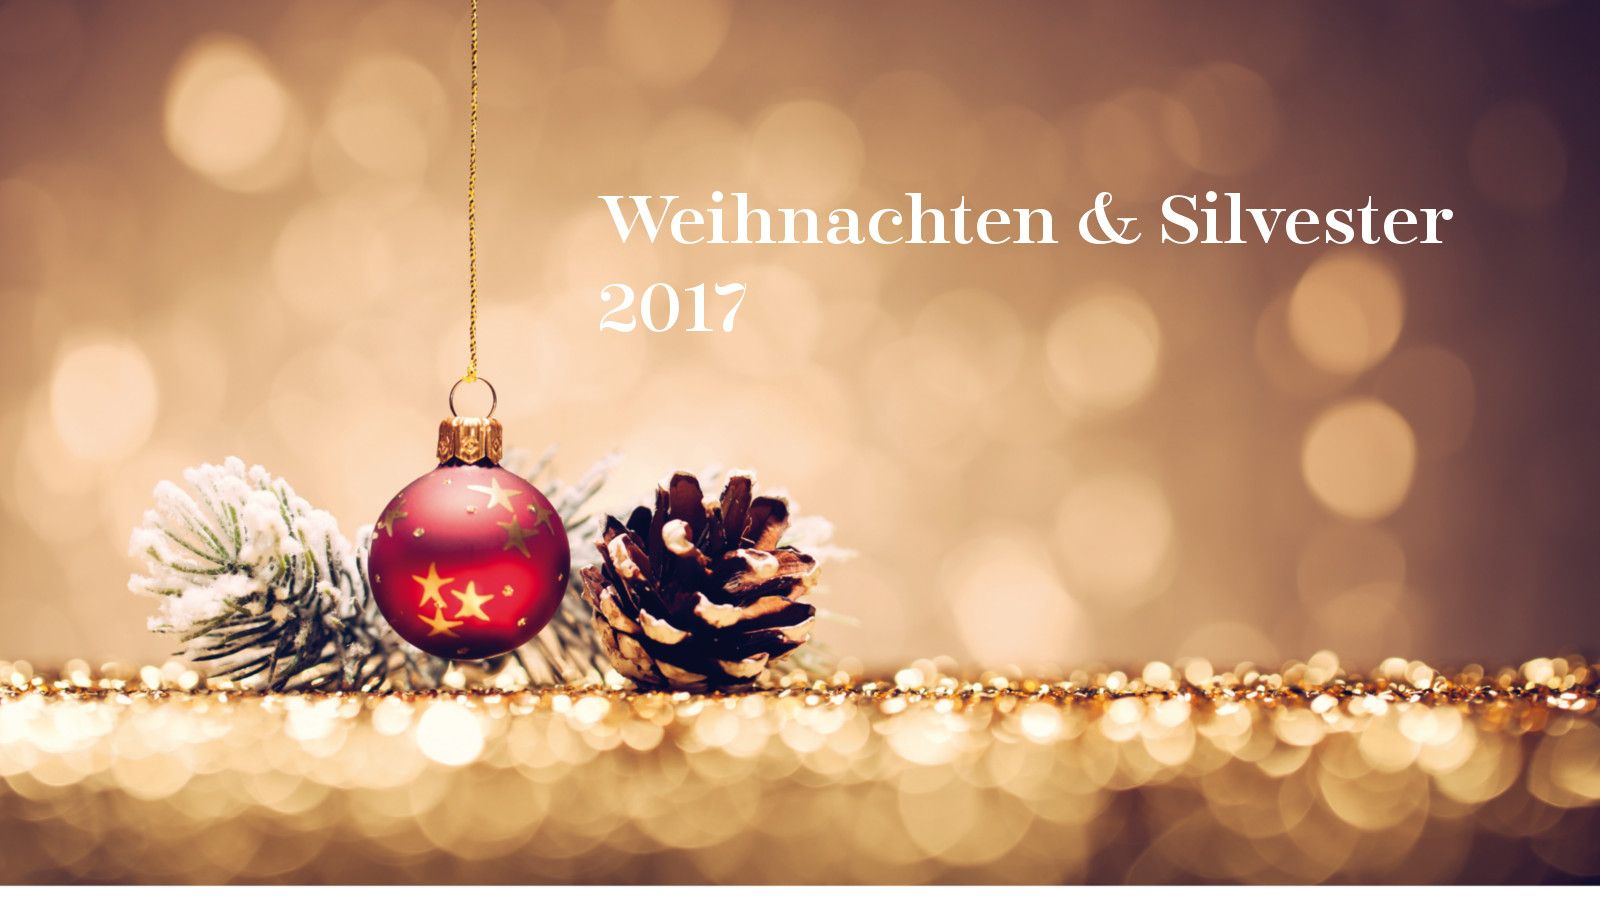 weihnachten und silvester 2017 bilder weihnachten 2017. Black Bedroom Furniture Sets. Home Design Ideas